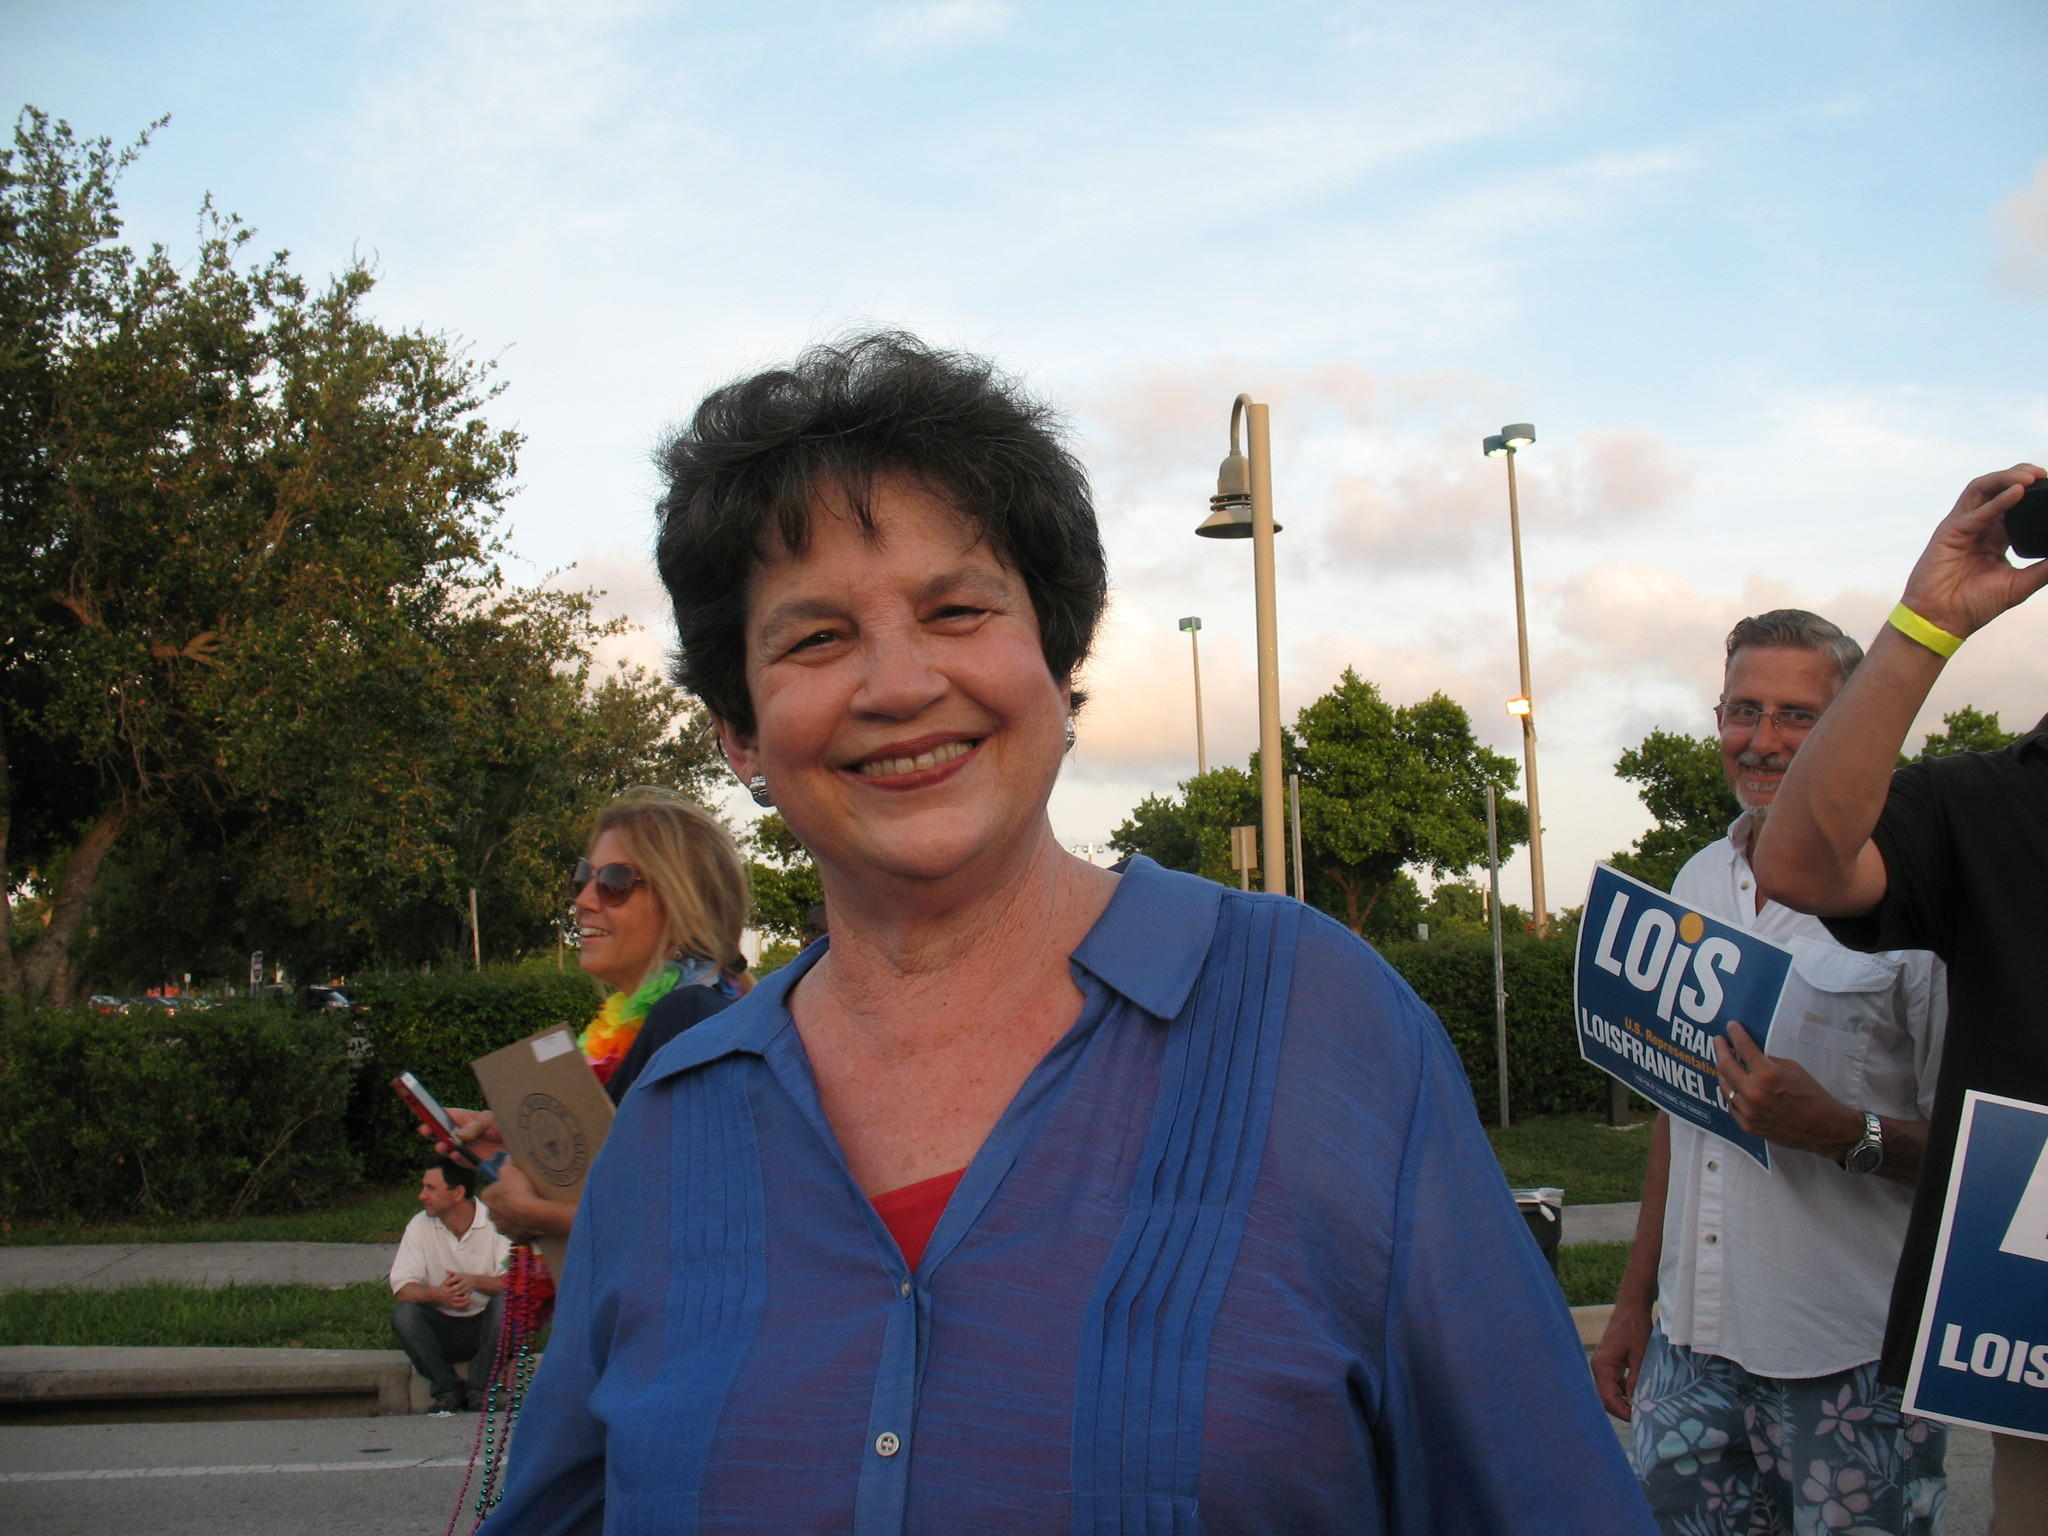 U.S. Rep. Lois Frankel at 2013 gay pride parade in Wilton Manors.